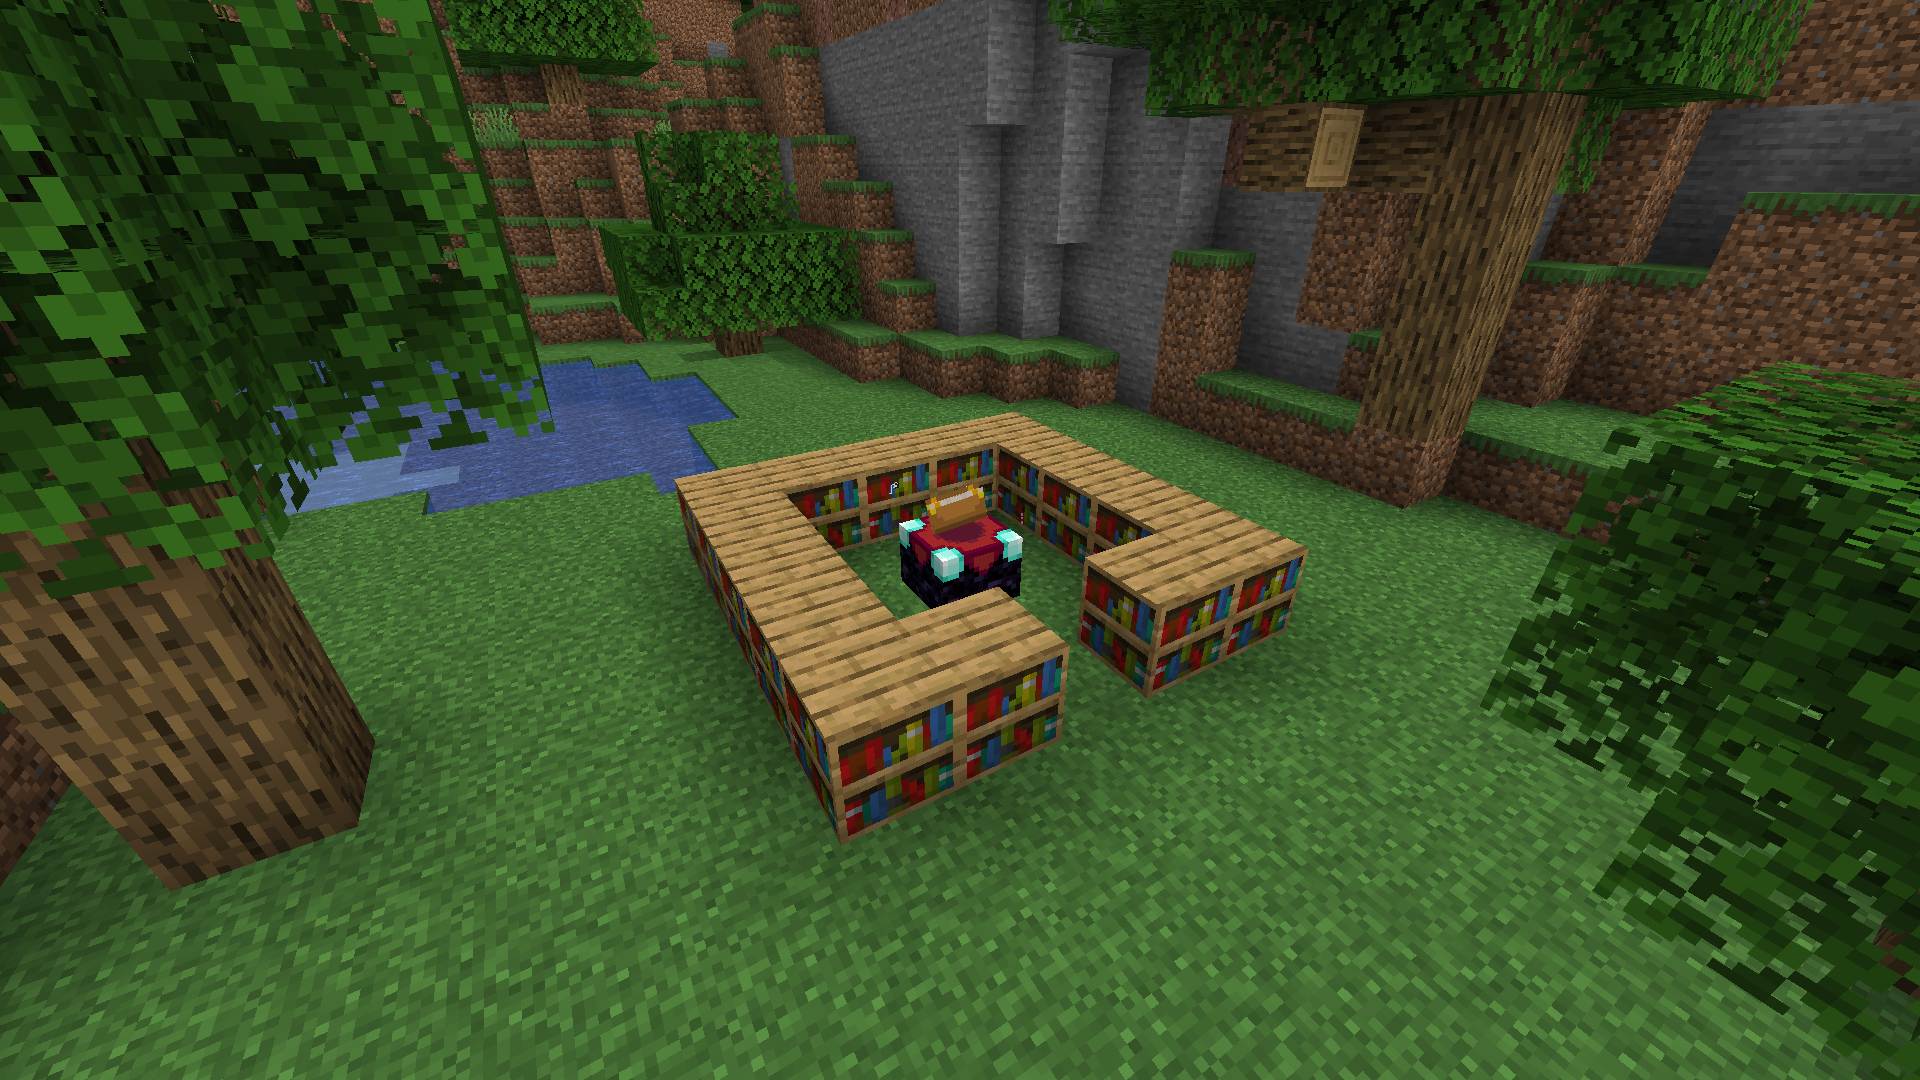 Number Of Bookshelves Around Enchanting Table Survival Mode - Enchantment table bookshelves